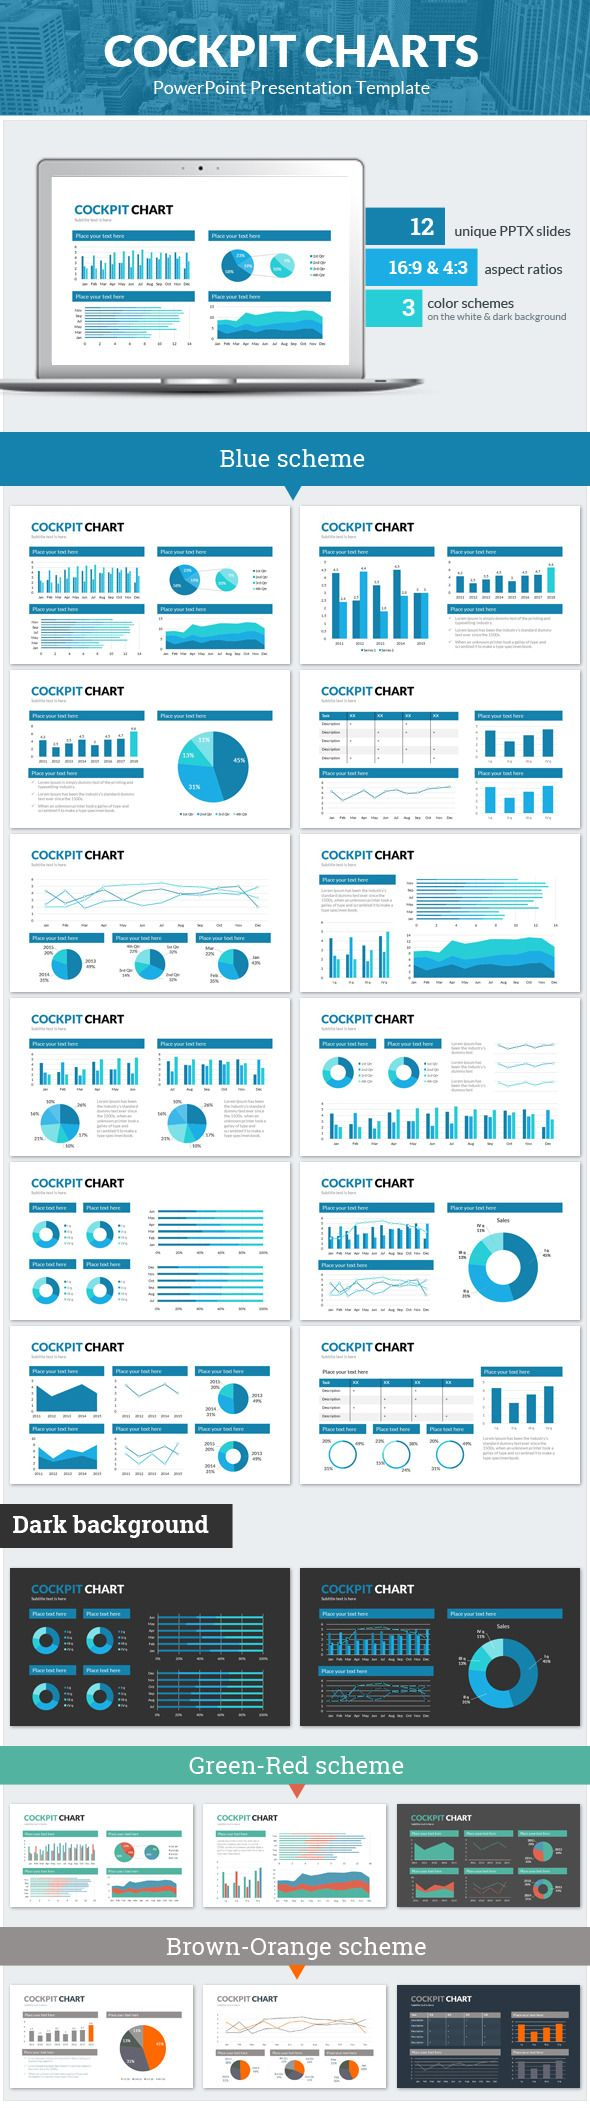 39 best various images on pinterest beautiful things cartography cockpit charts powerpoint presentation template httpgraphicriveritemcockpit toneelgroepblik Gallery